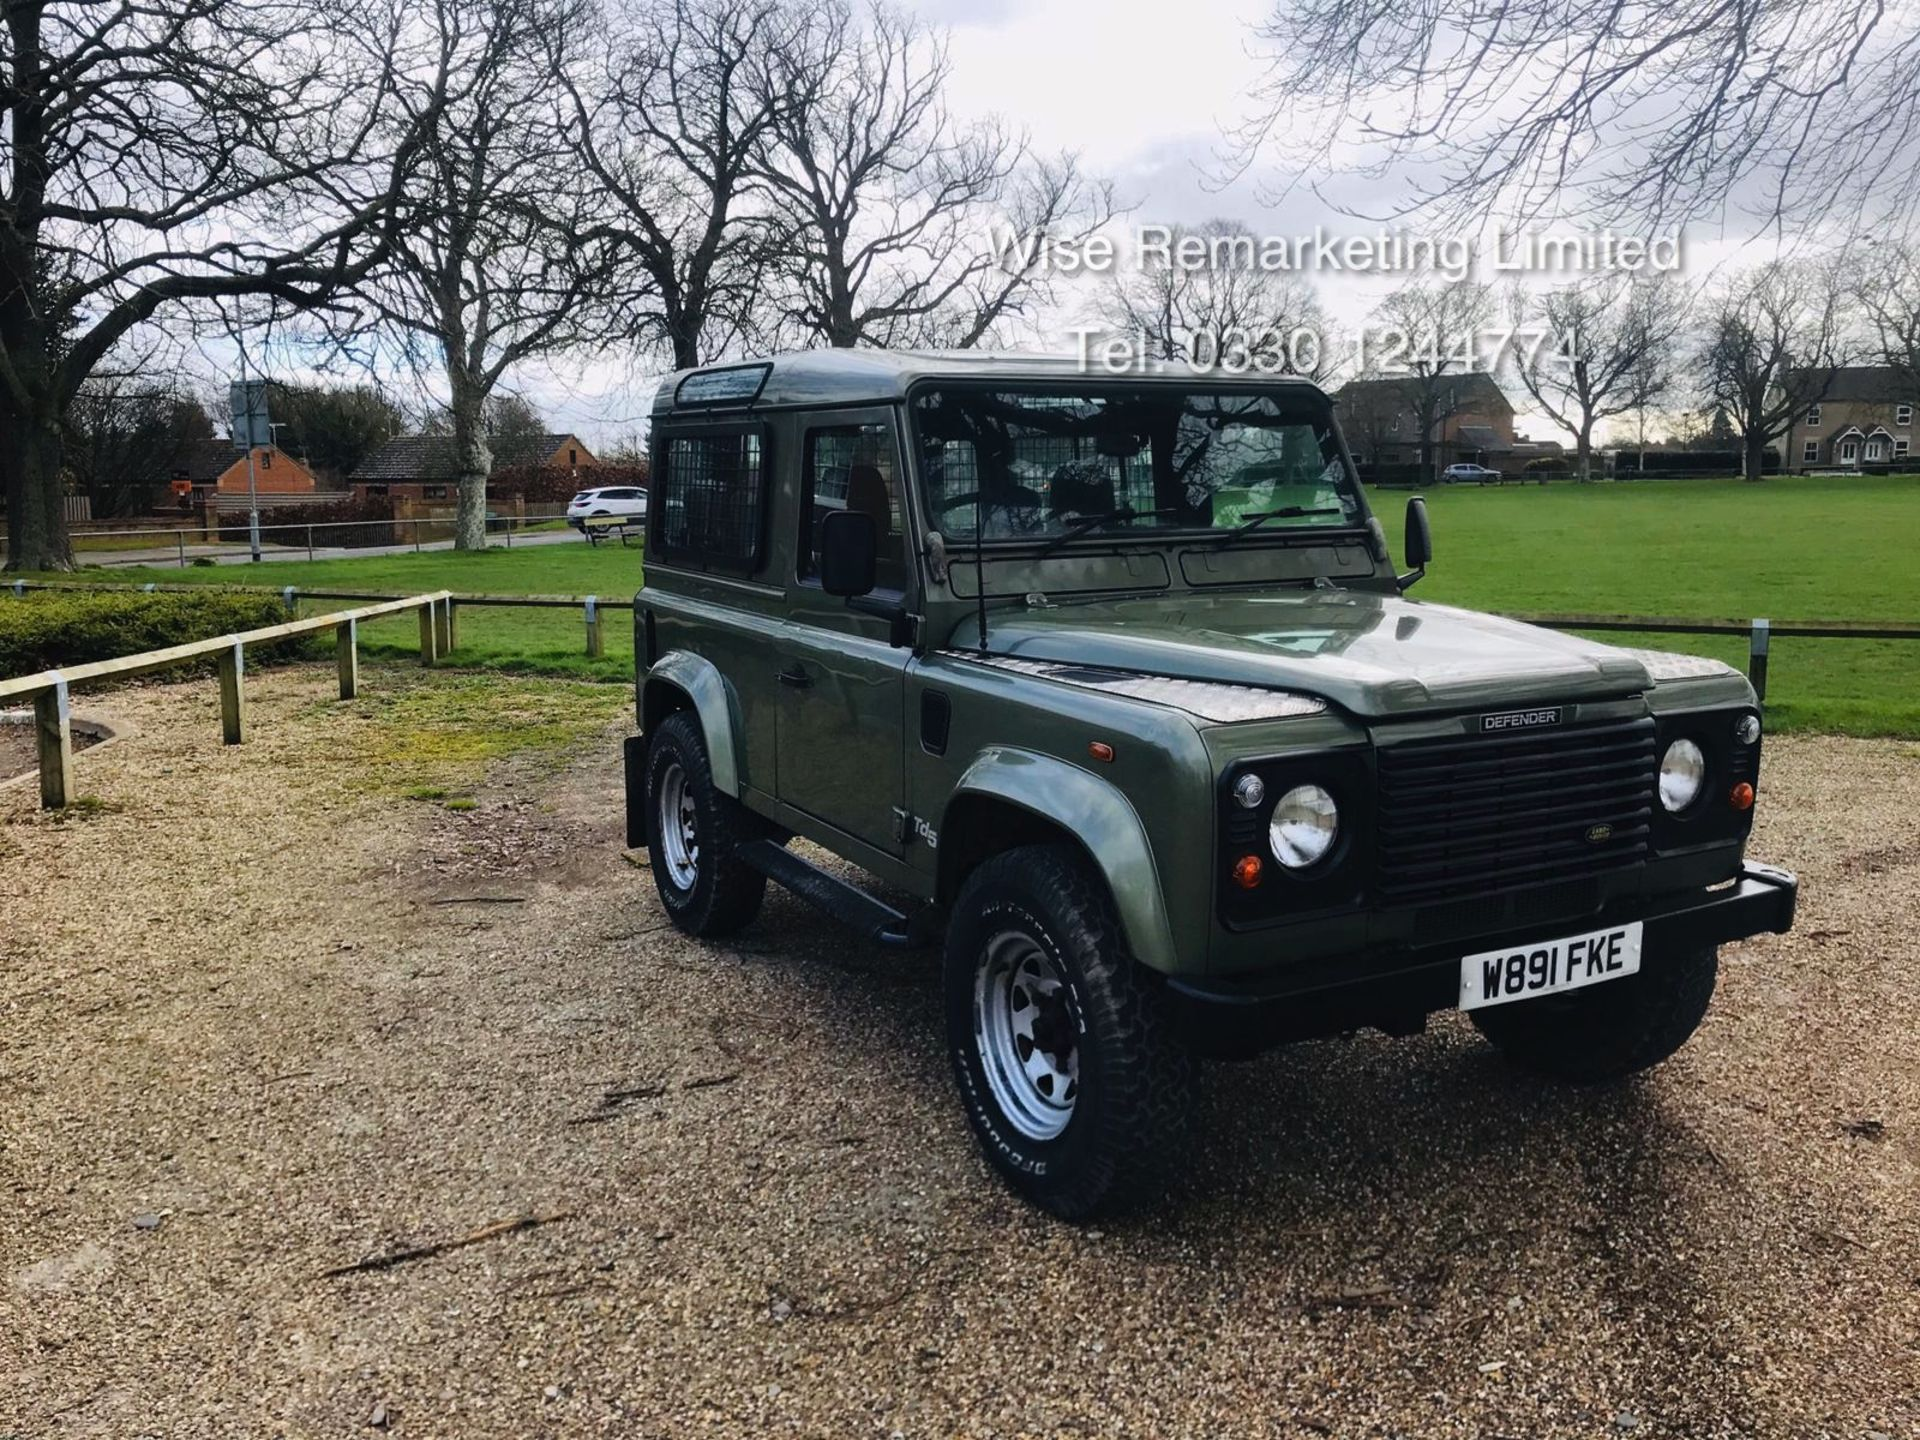 Lot 10 - (RESERVE MET) Land Rover Defender 90 County 2.5 TD5 - 2000 Year W Reg - 7 Seater- SAVE 20% NO VAT